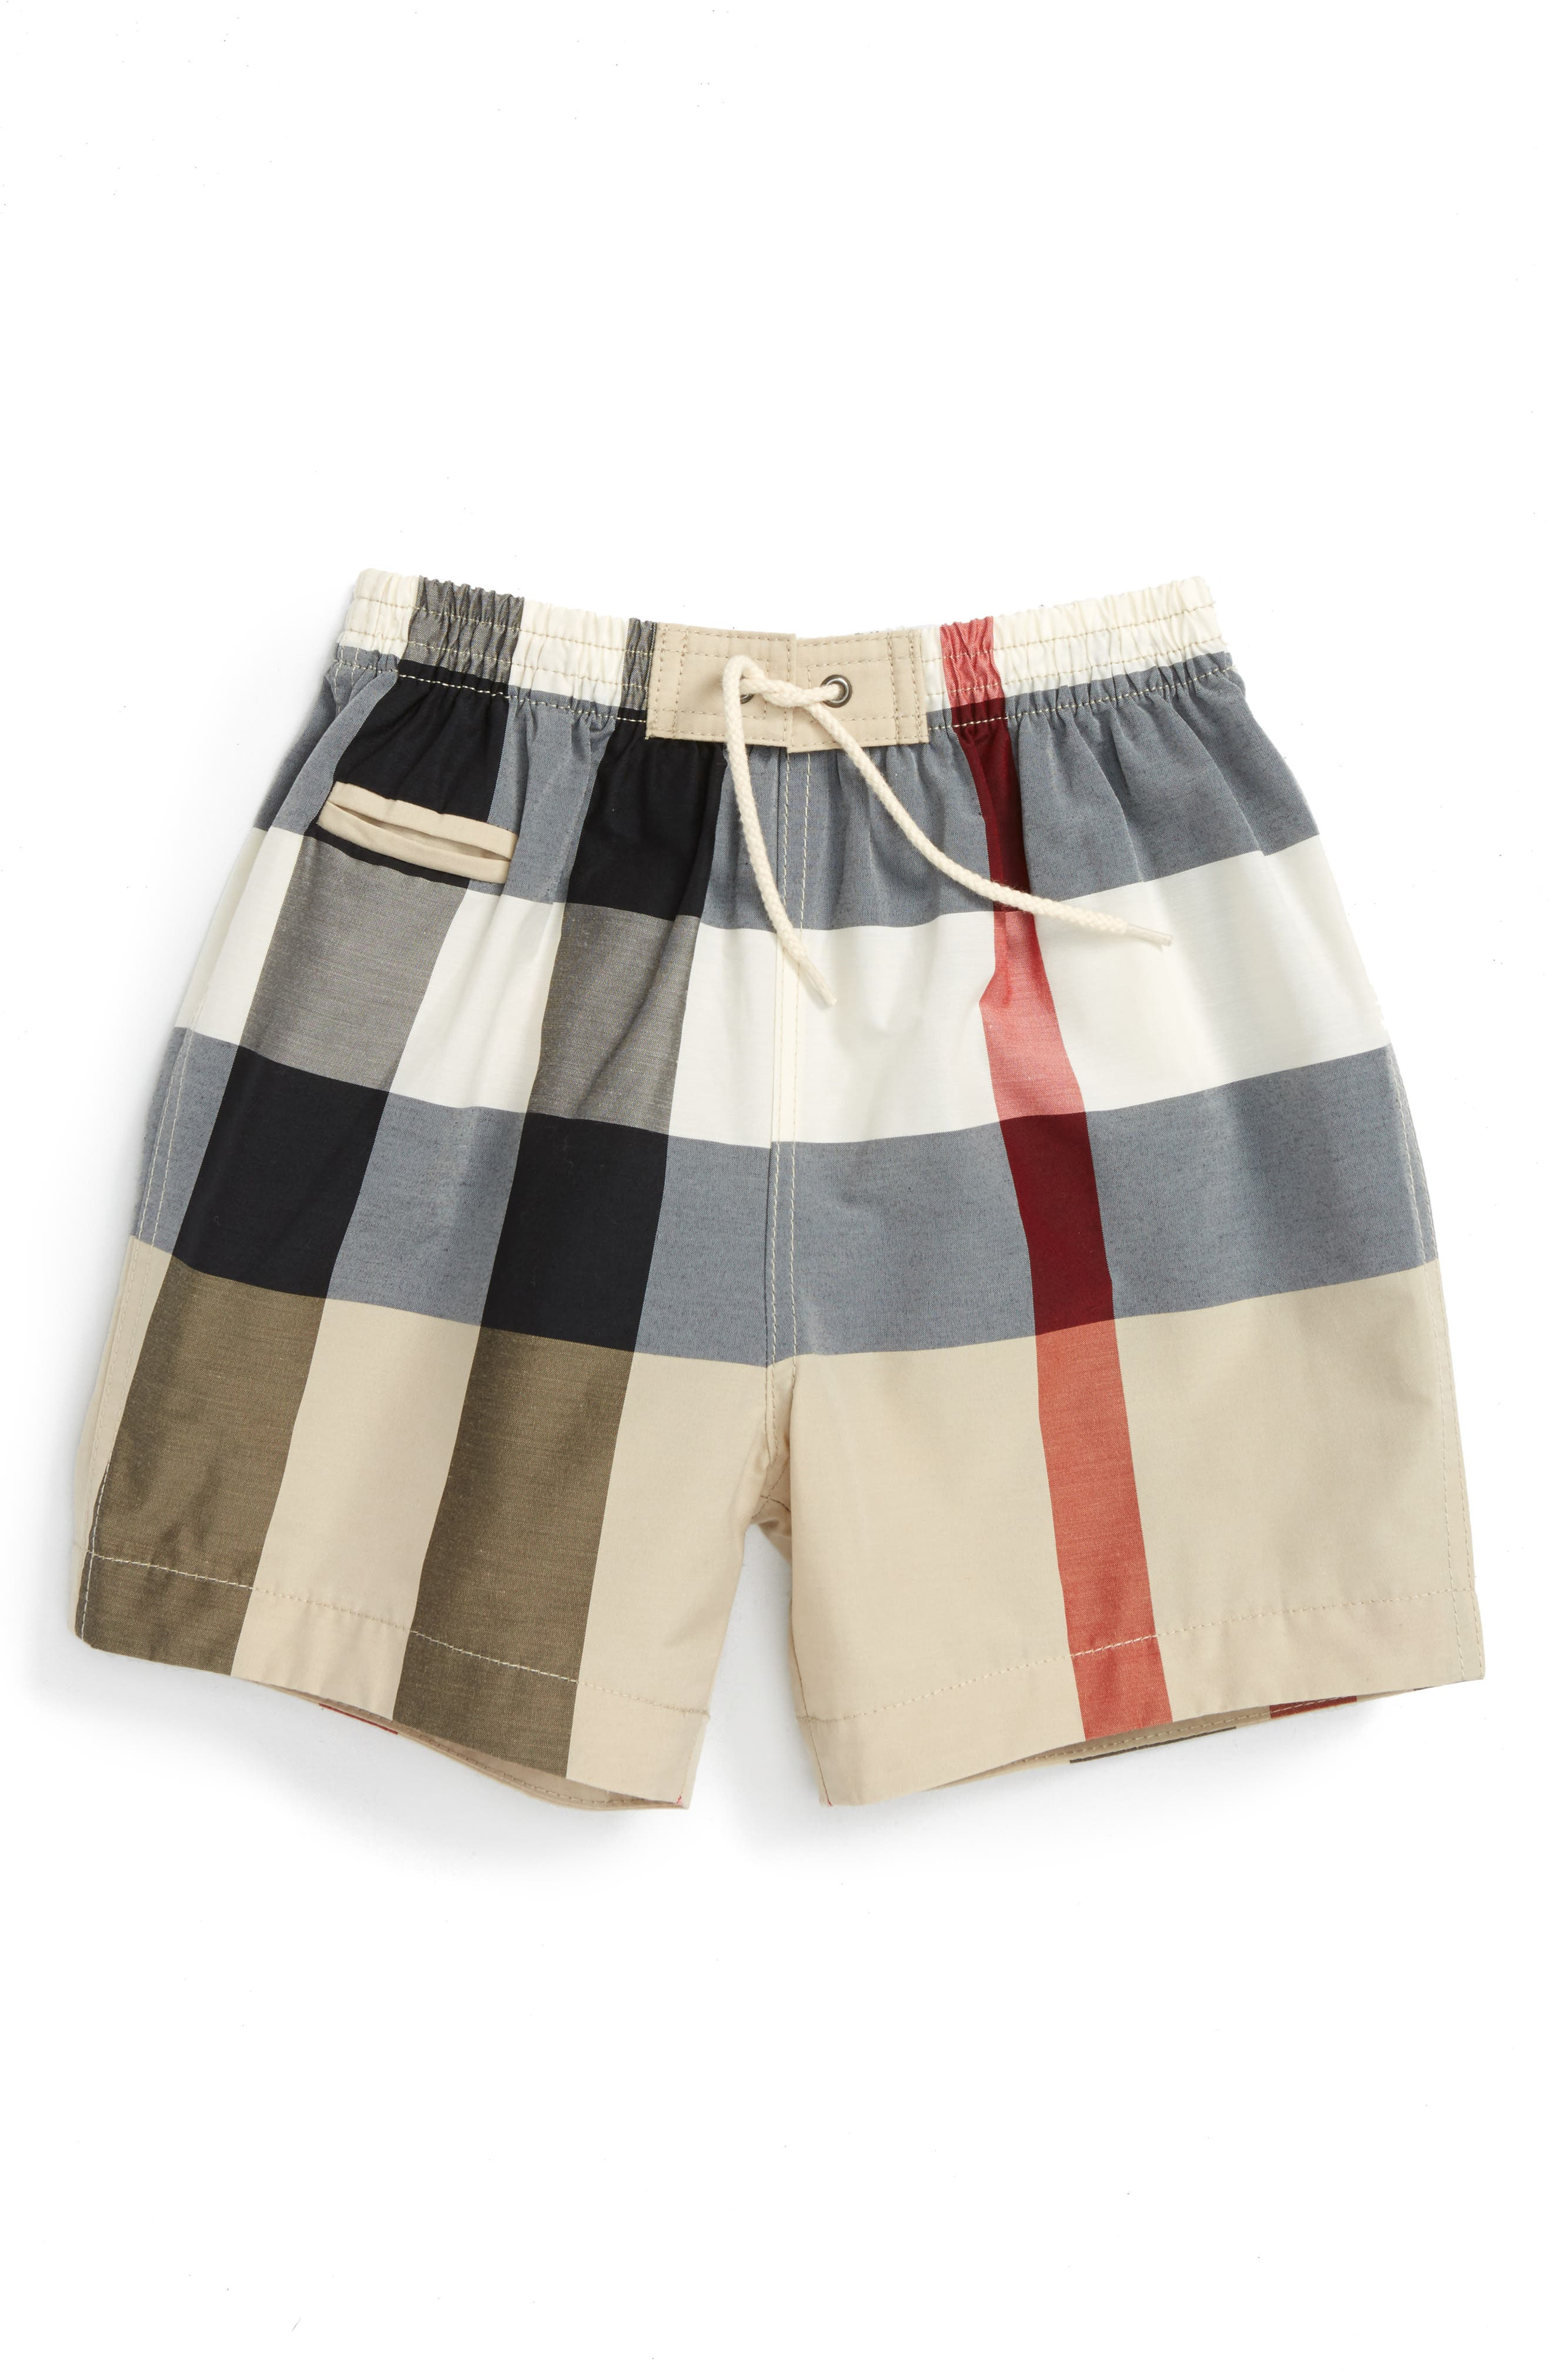 Saxon Check Swim Trunks,                             Main thumbnail 1, color,                             NEW CLASSIC